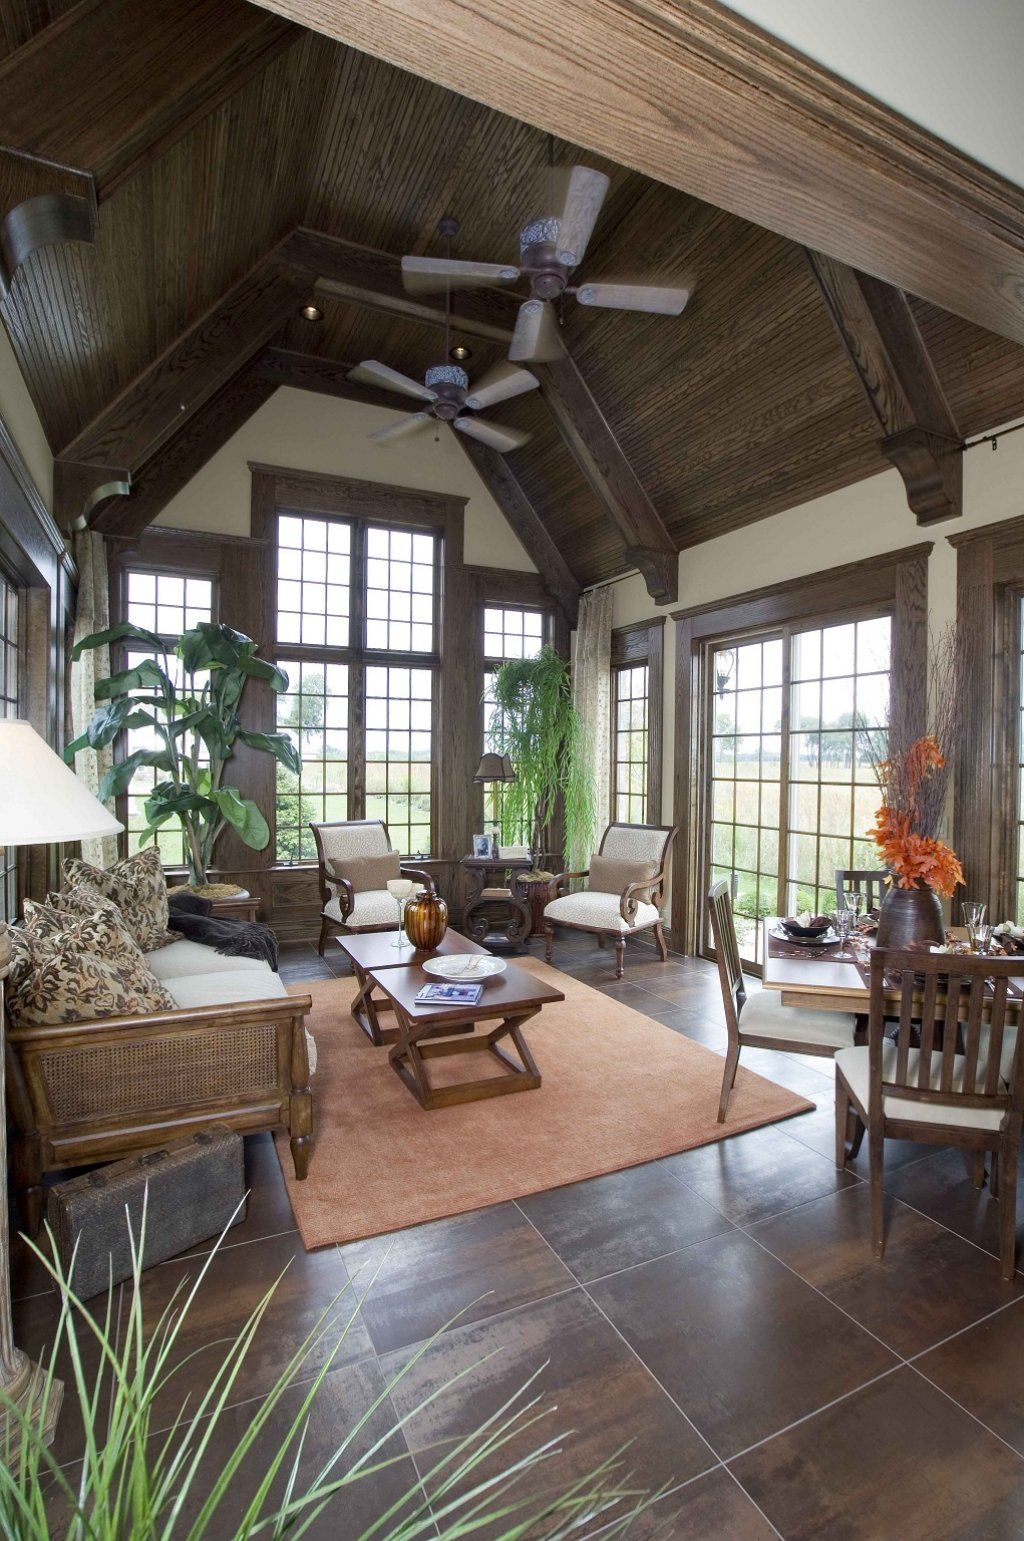 Four Season Room Four Season Room Ideas Pinterest Room Spaces And Sunroom